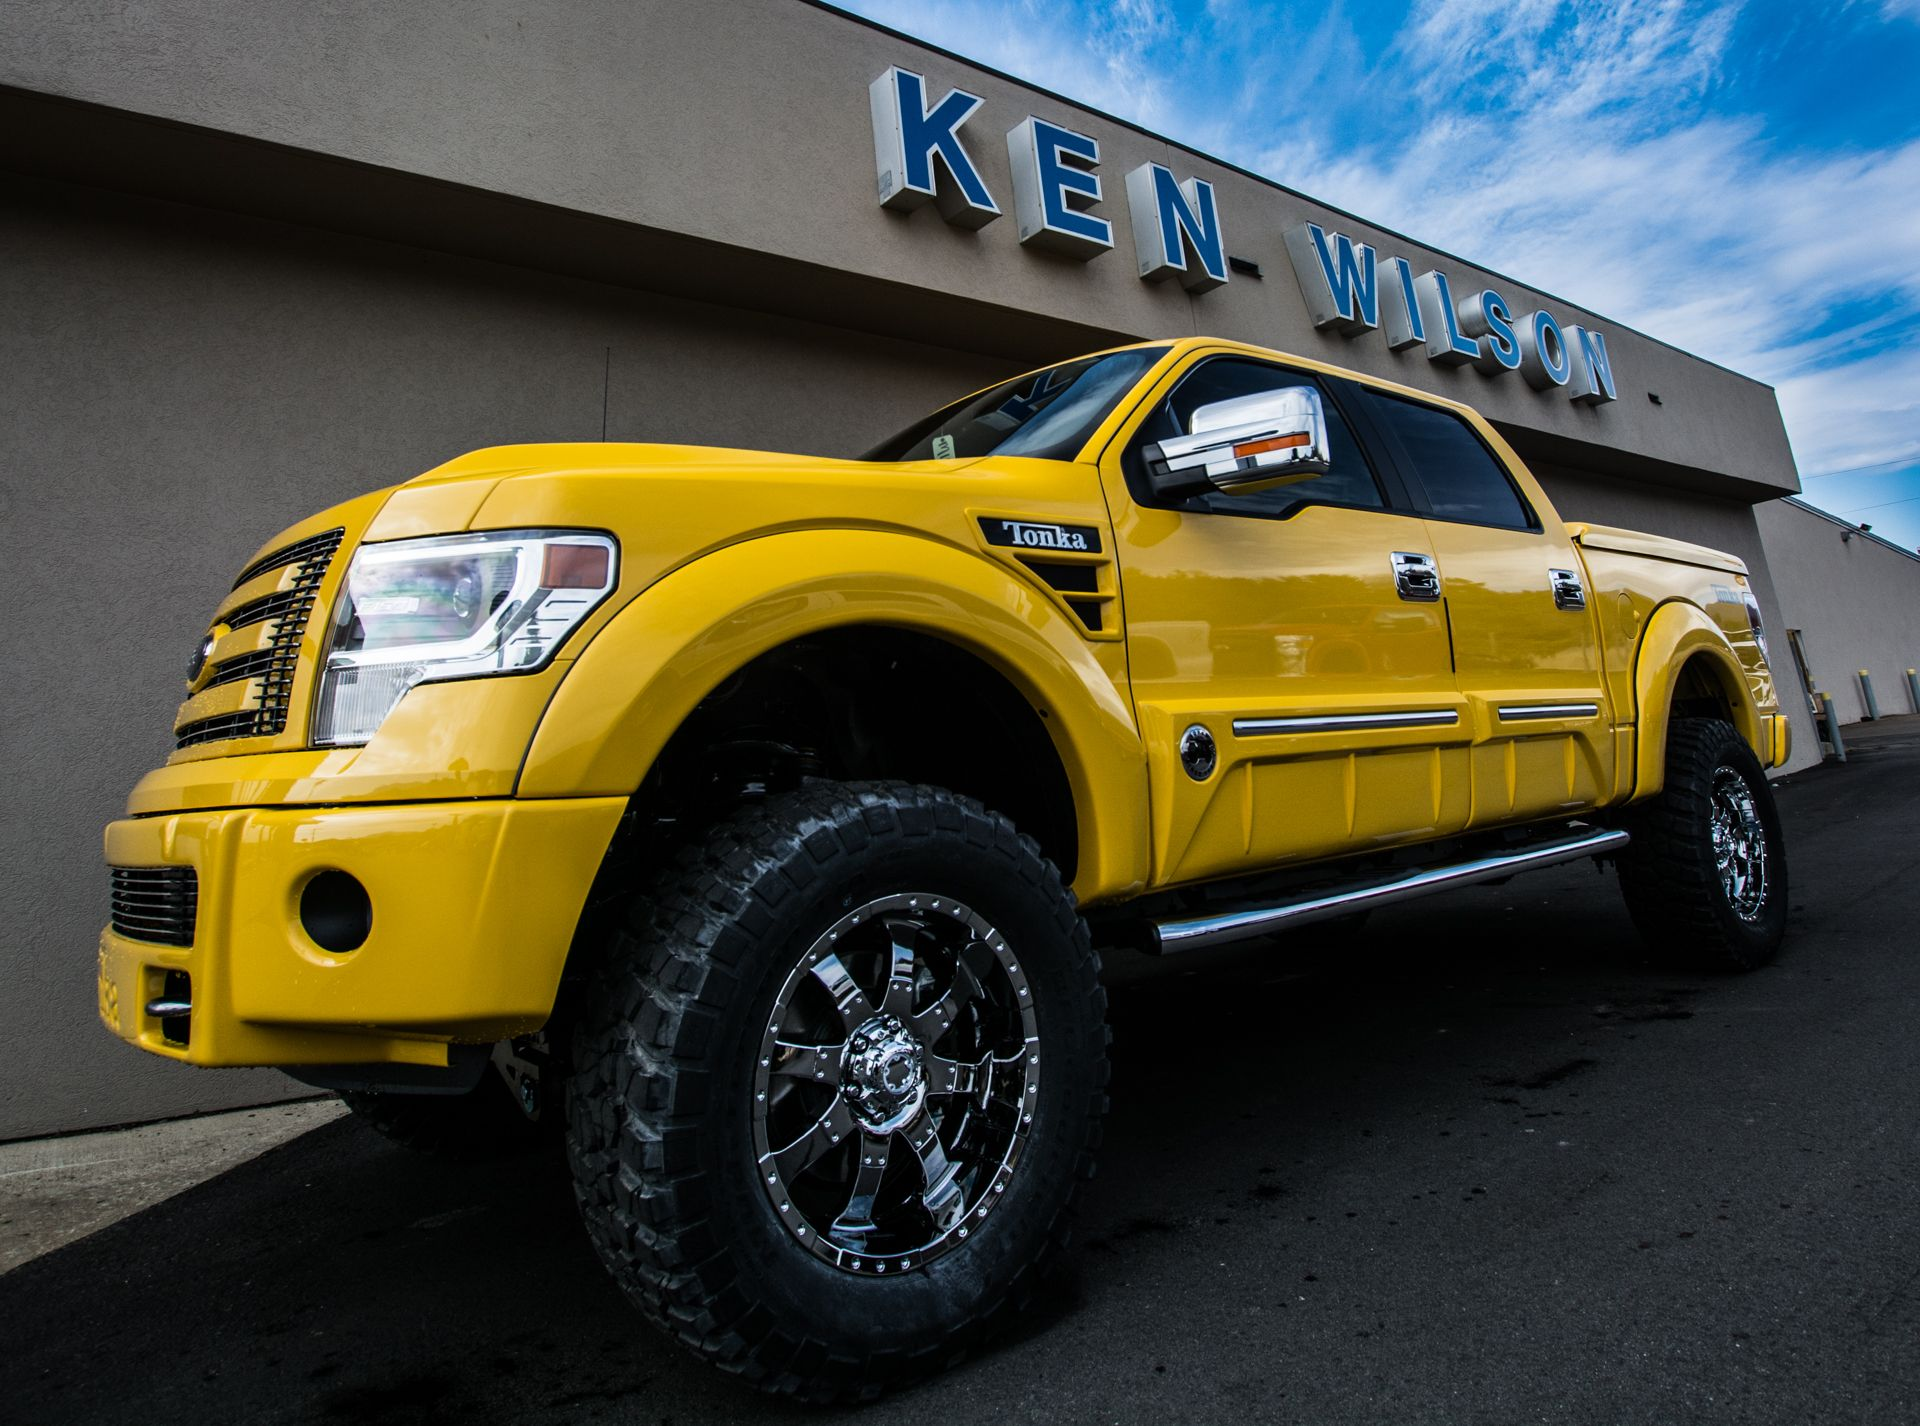 tonka edition f 150 from tuscany trucks 6 inch lift kit from pro comp km2 mud terrain tires. Black Bedroom Furniture Sets. Home Design Ideas